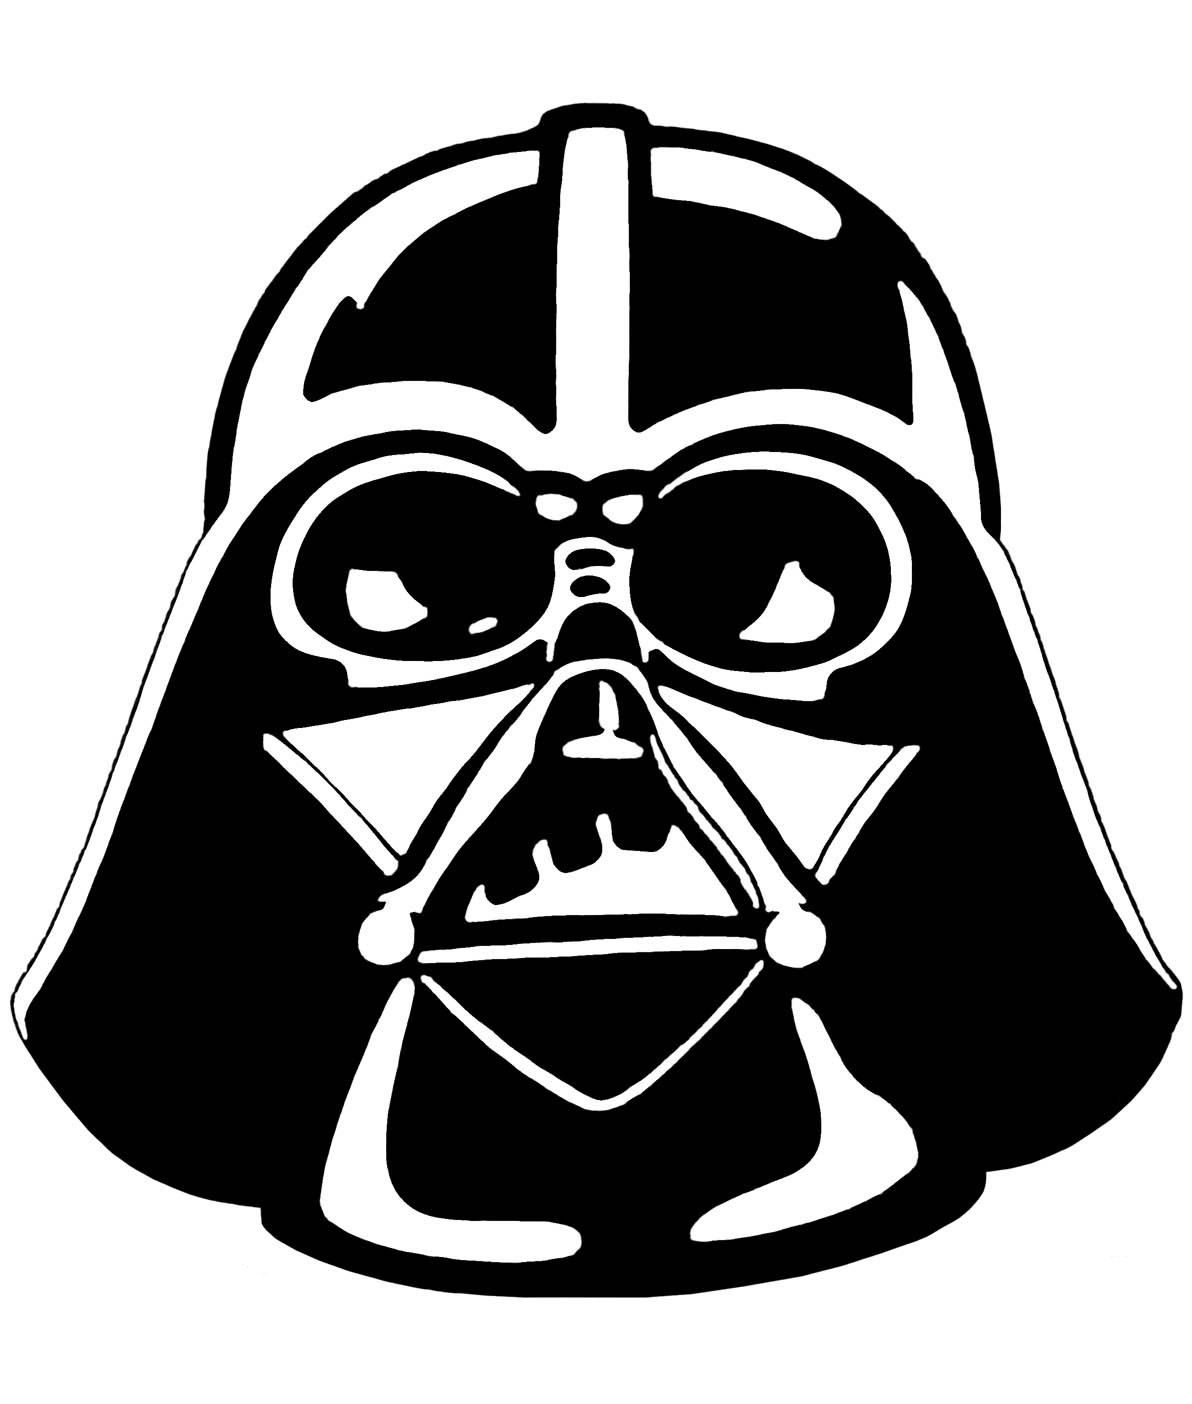 darth vader graphic - Pochoir Dark Vador